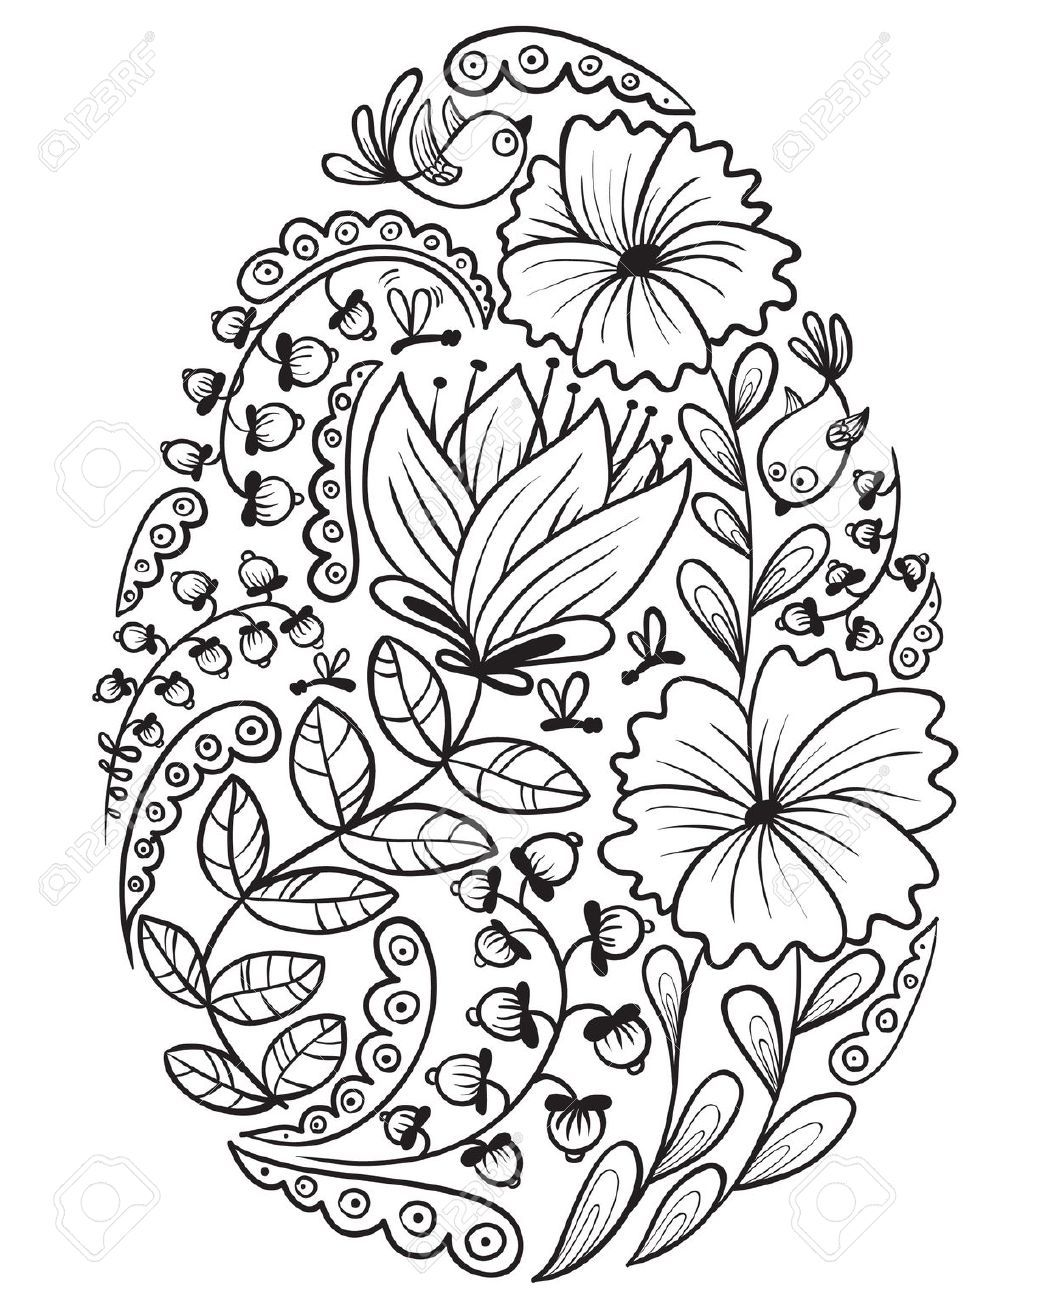 13057202-Cute-Doodle-Floral-Easter-Egg--Stock-Vector-dragonfly.jpg ...